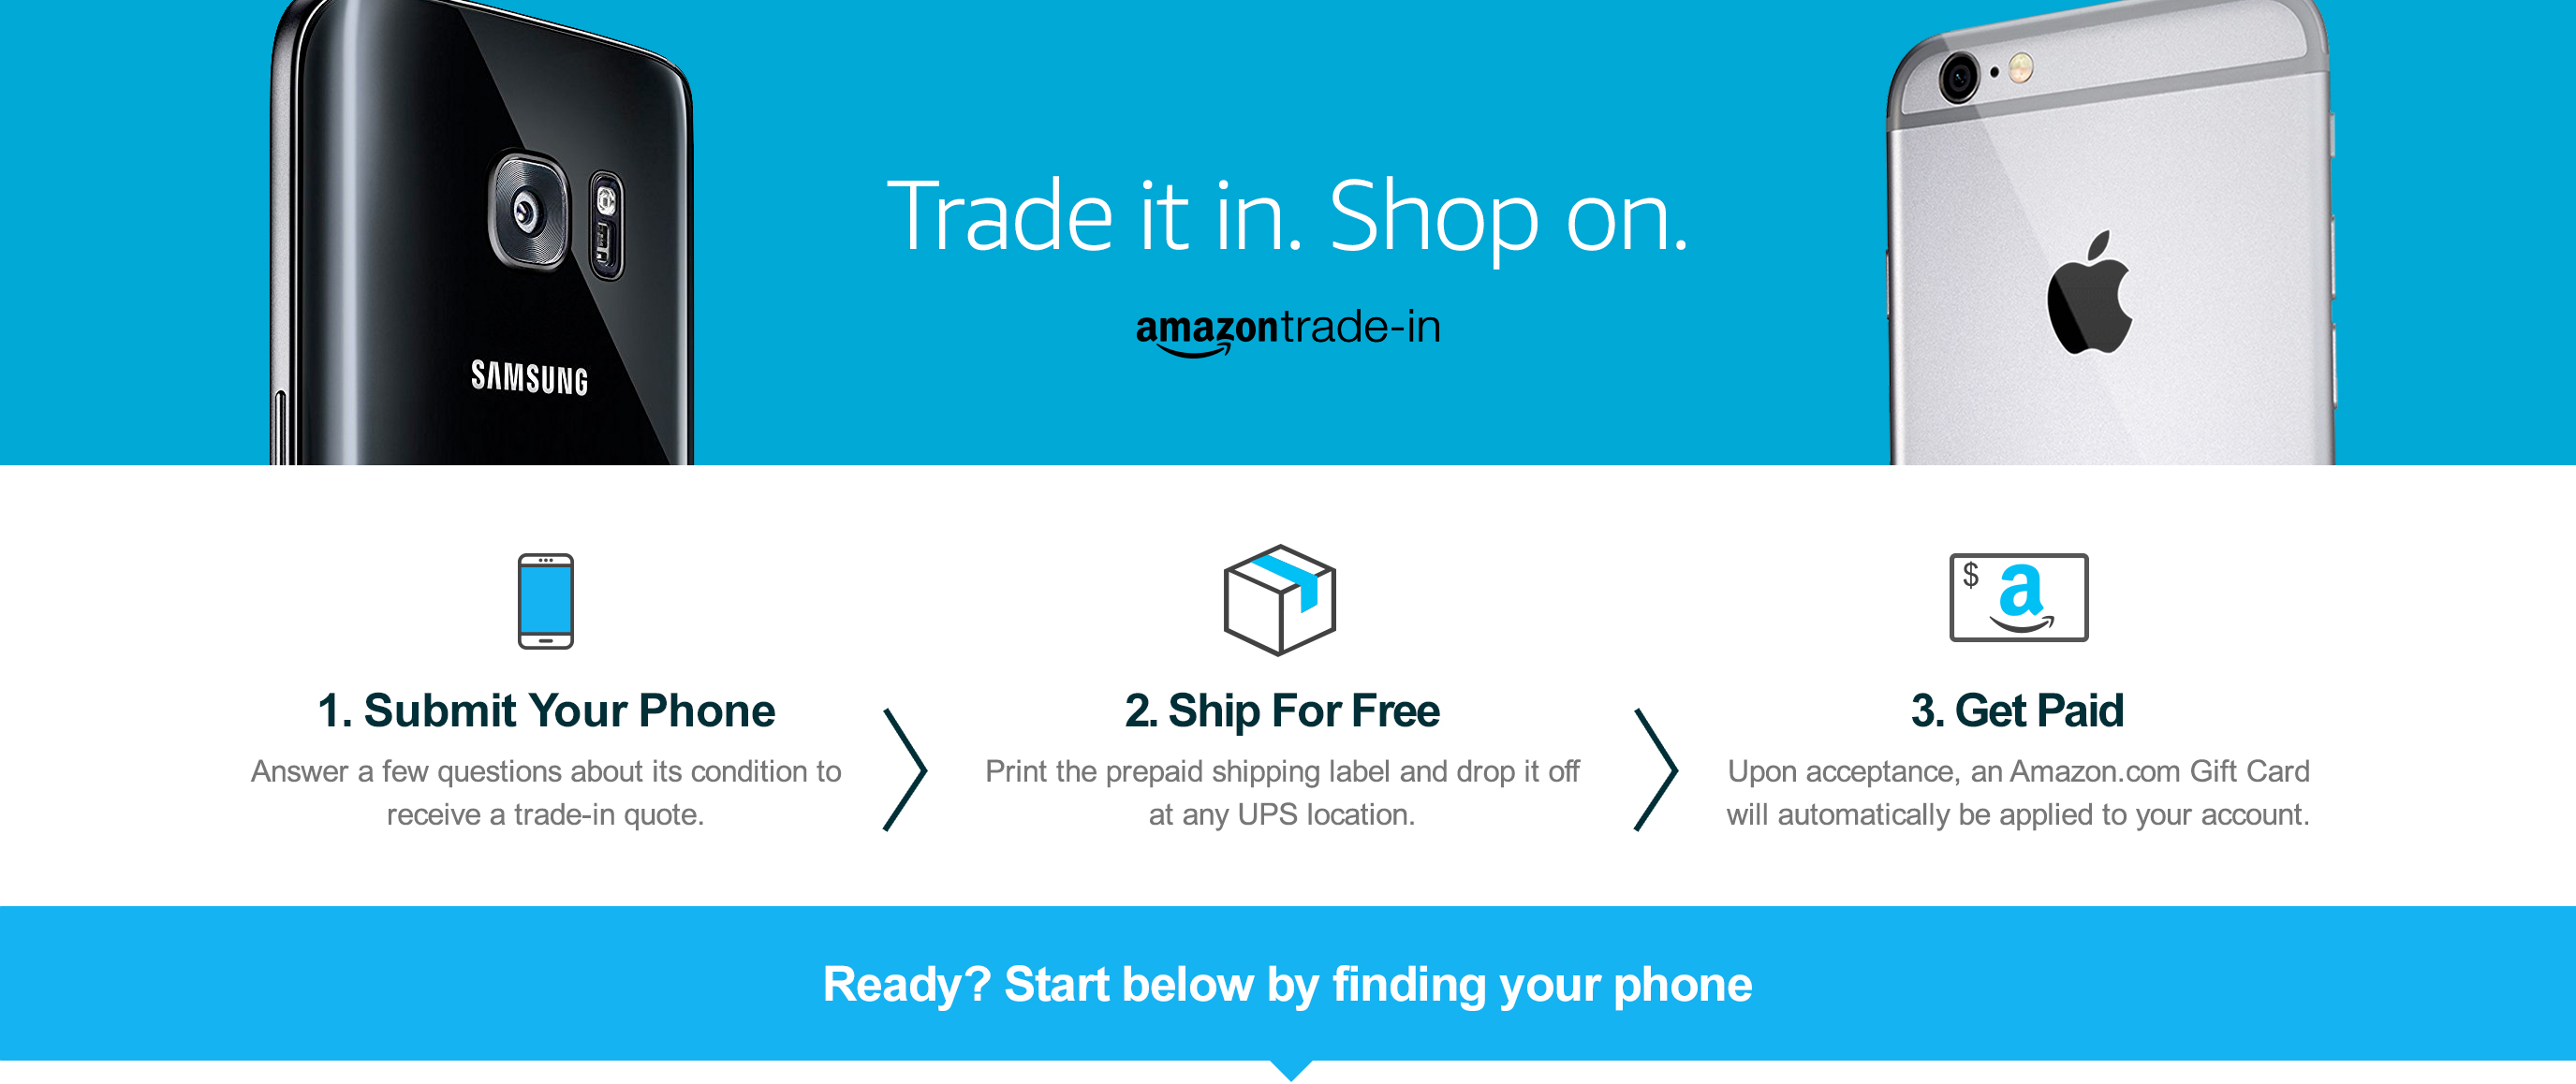 Trade it in. Shop on.